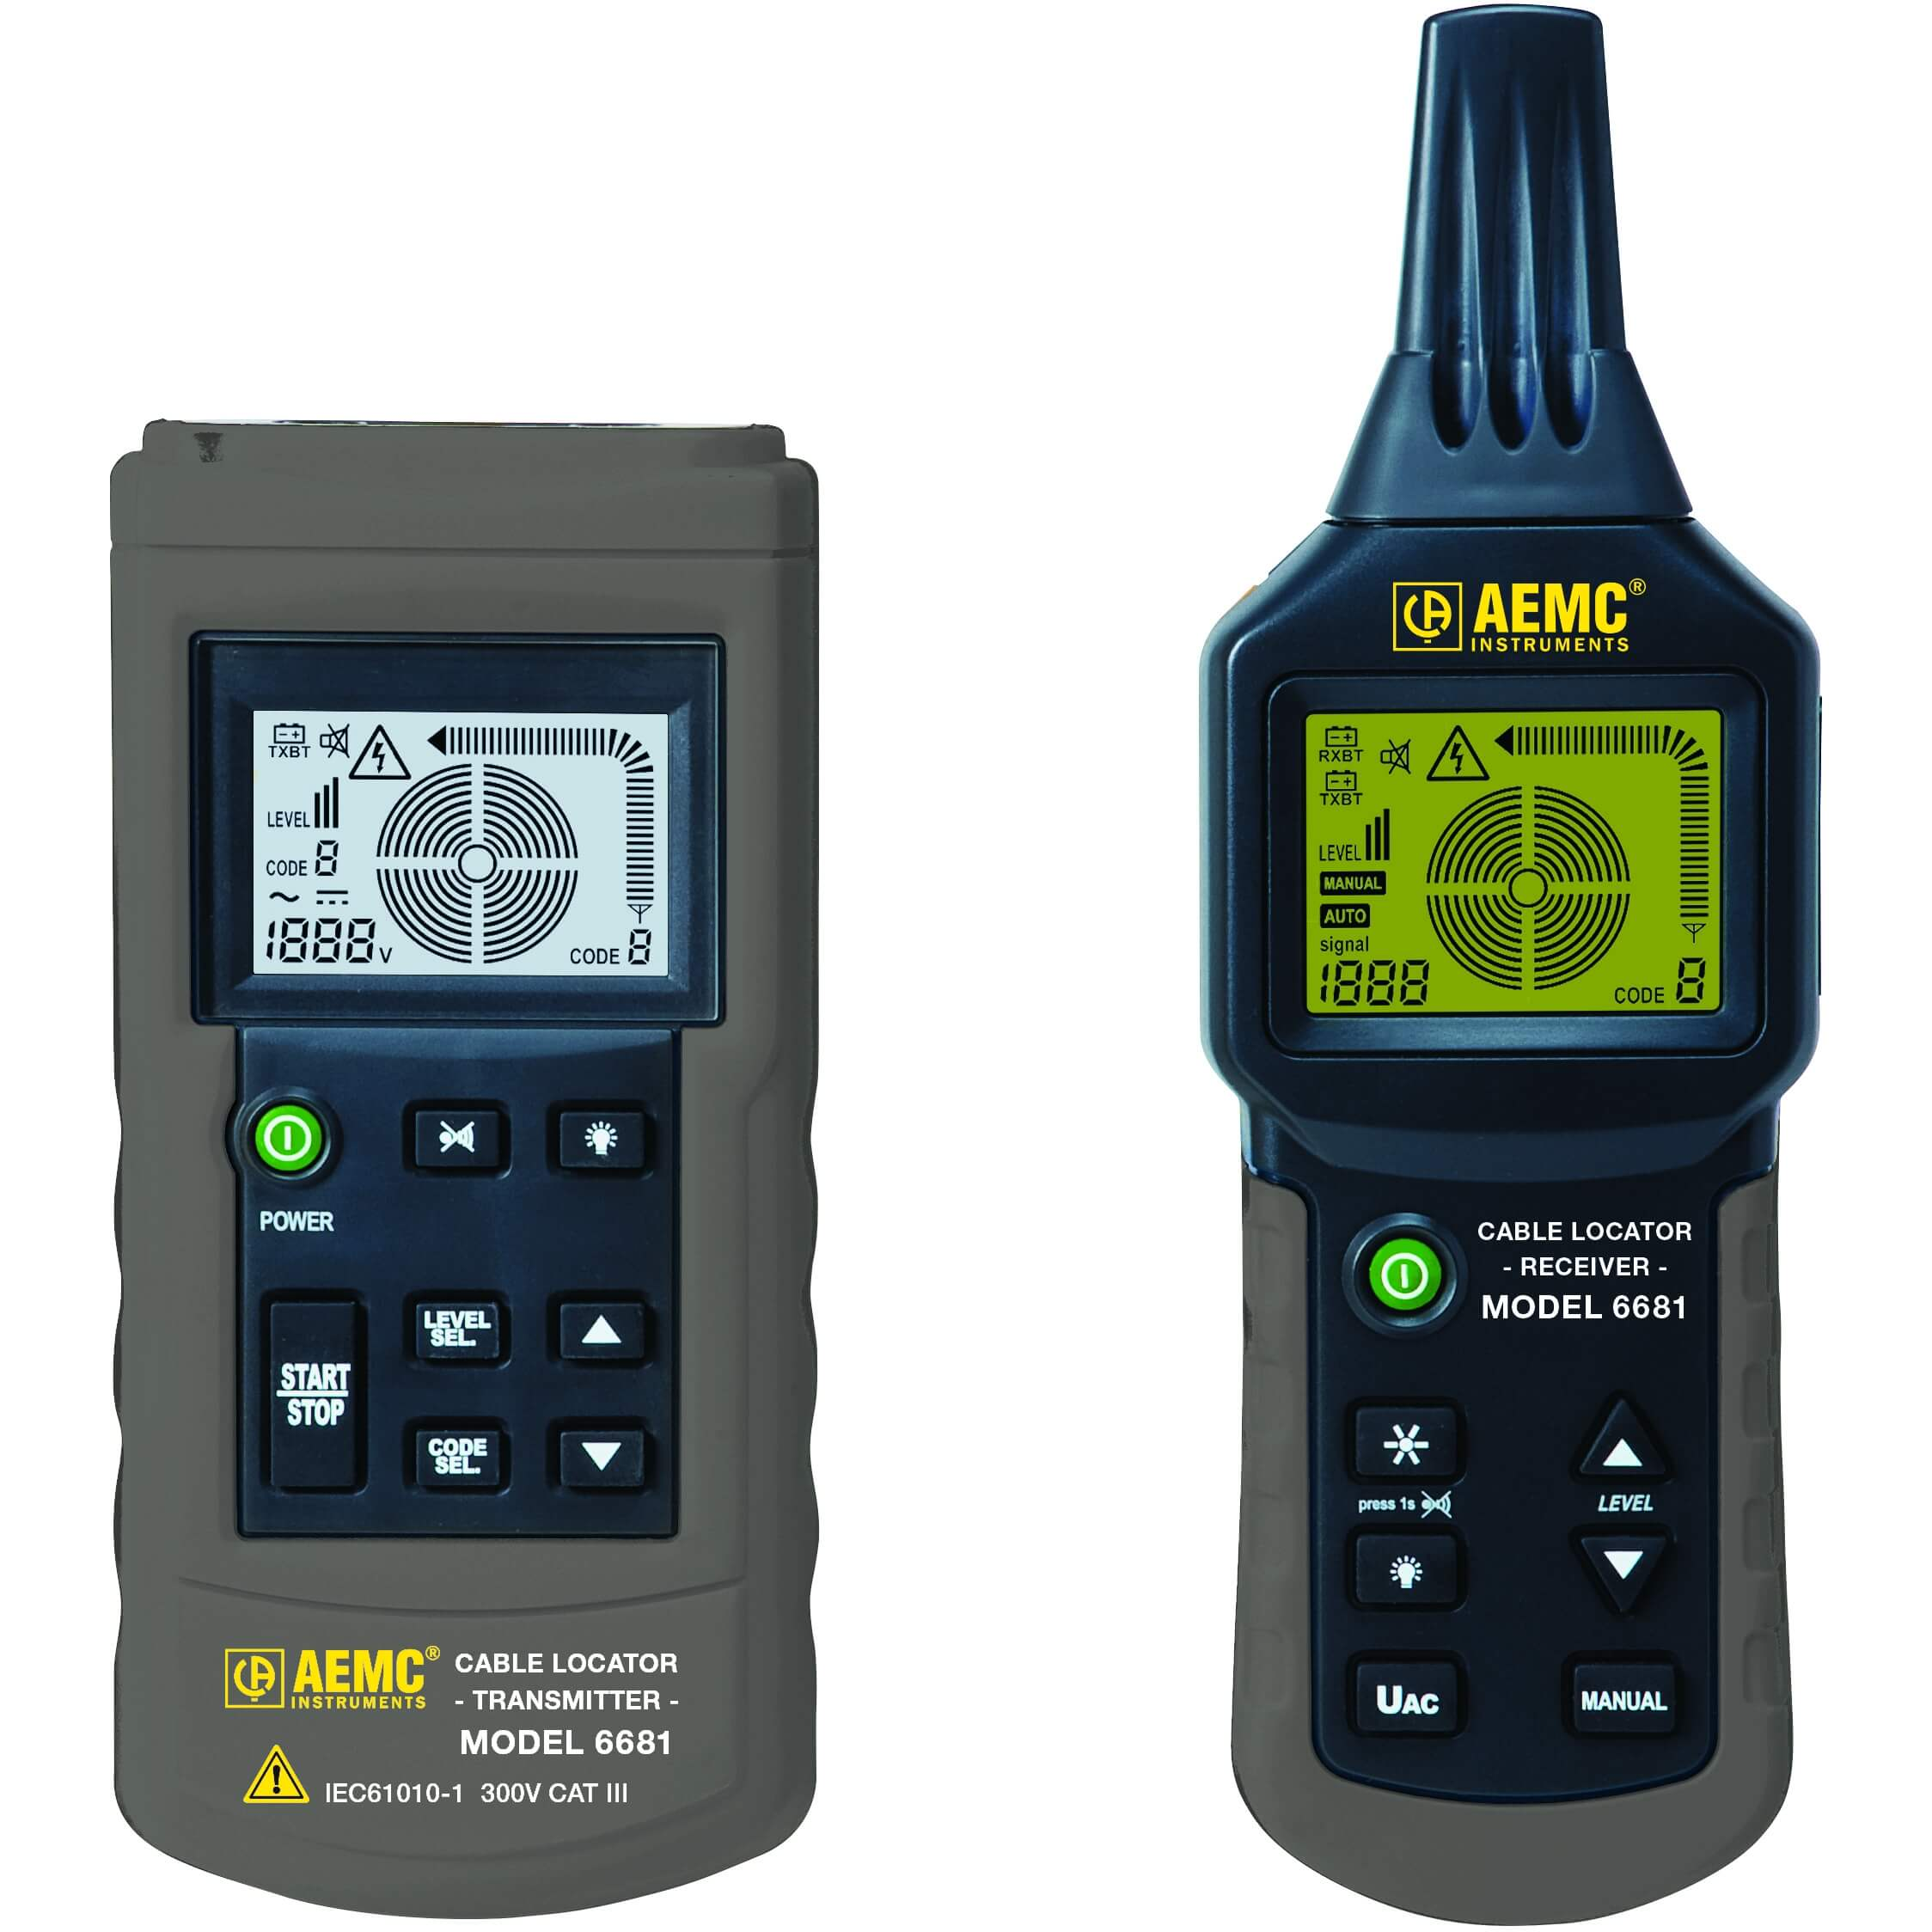 AEMC 6681 Cable Locator and Wire Tracer